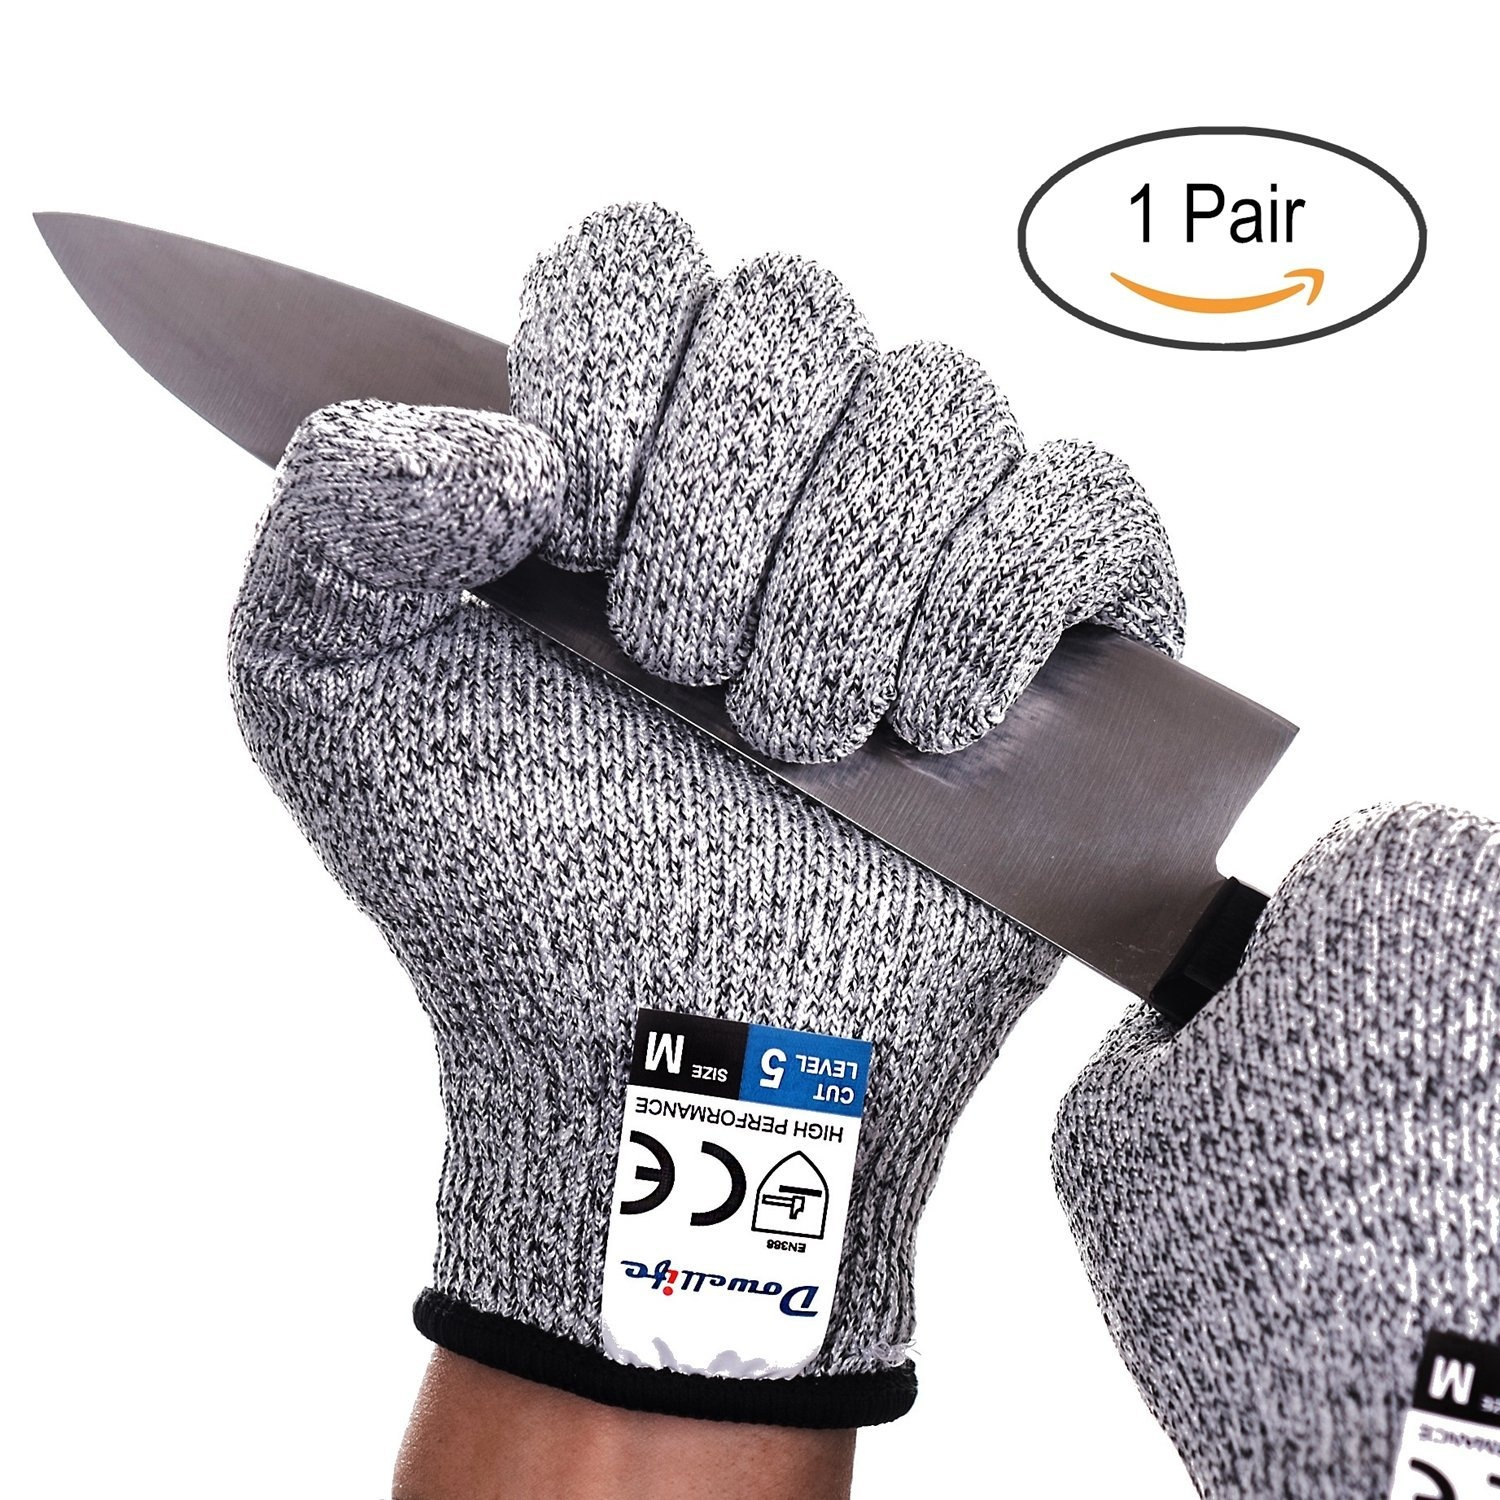 cut gloves for kitchen cabinet inserts resistant australia taraba home review